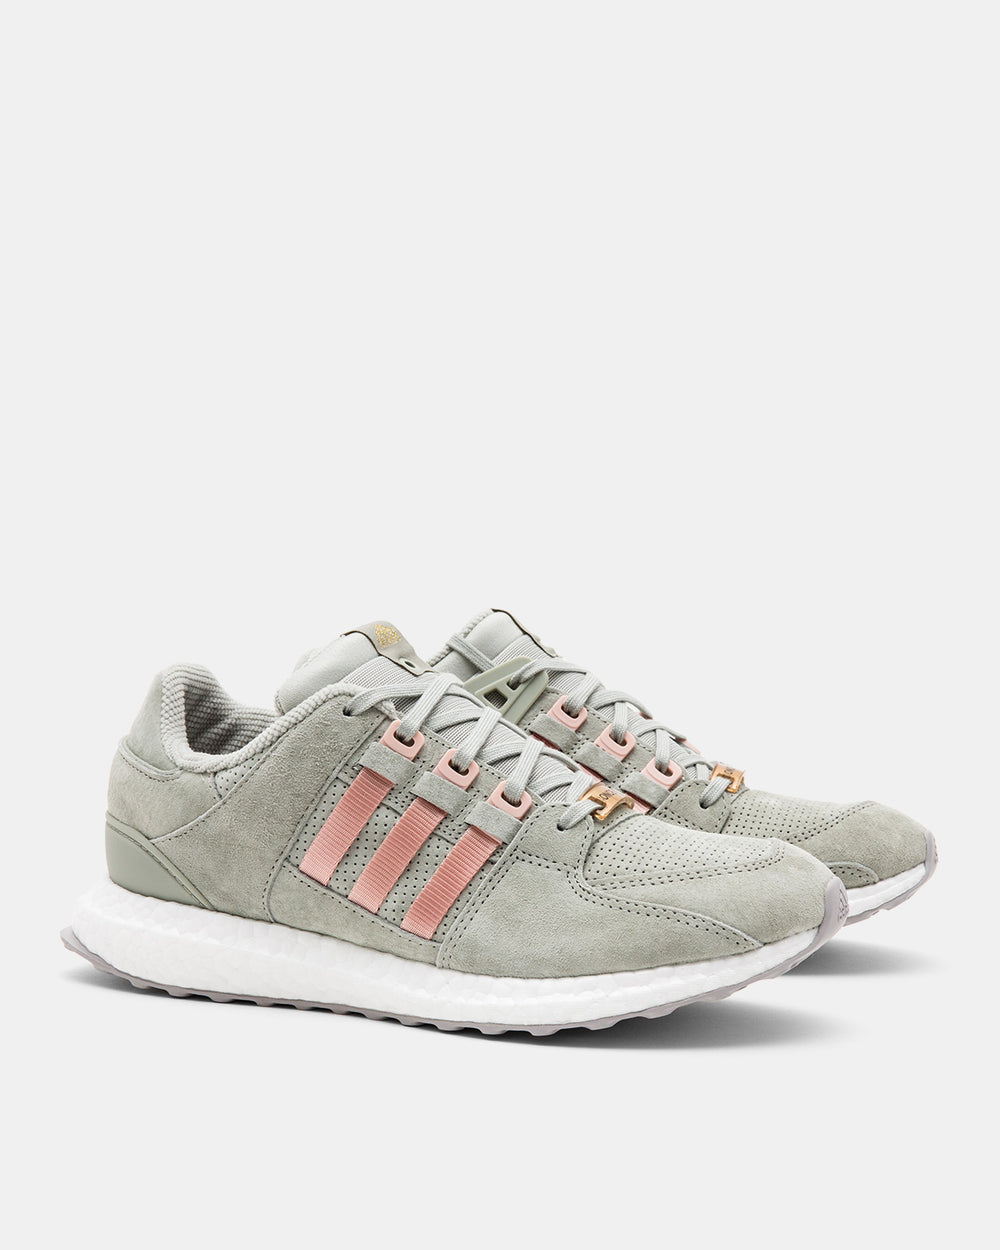 Concepts x adidas Equipment Support 93/16 (Sage)